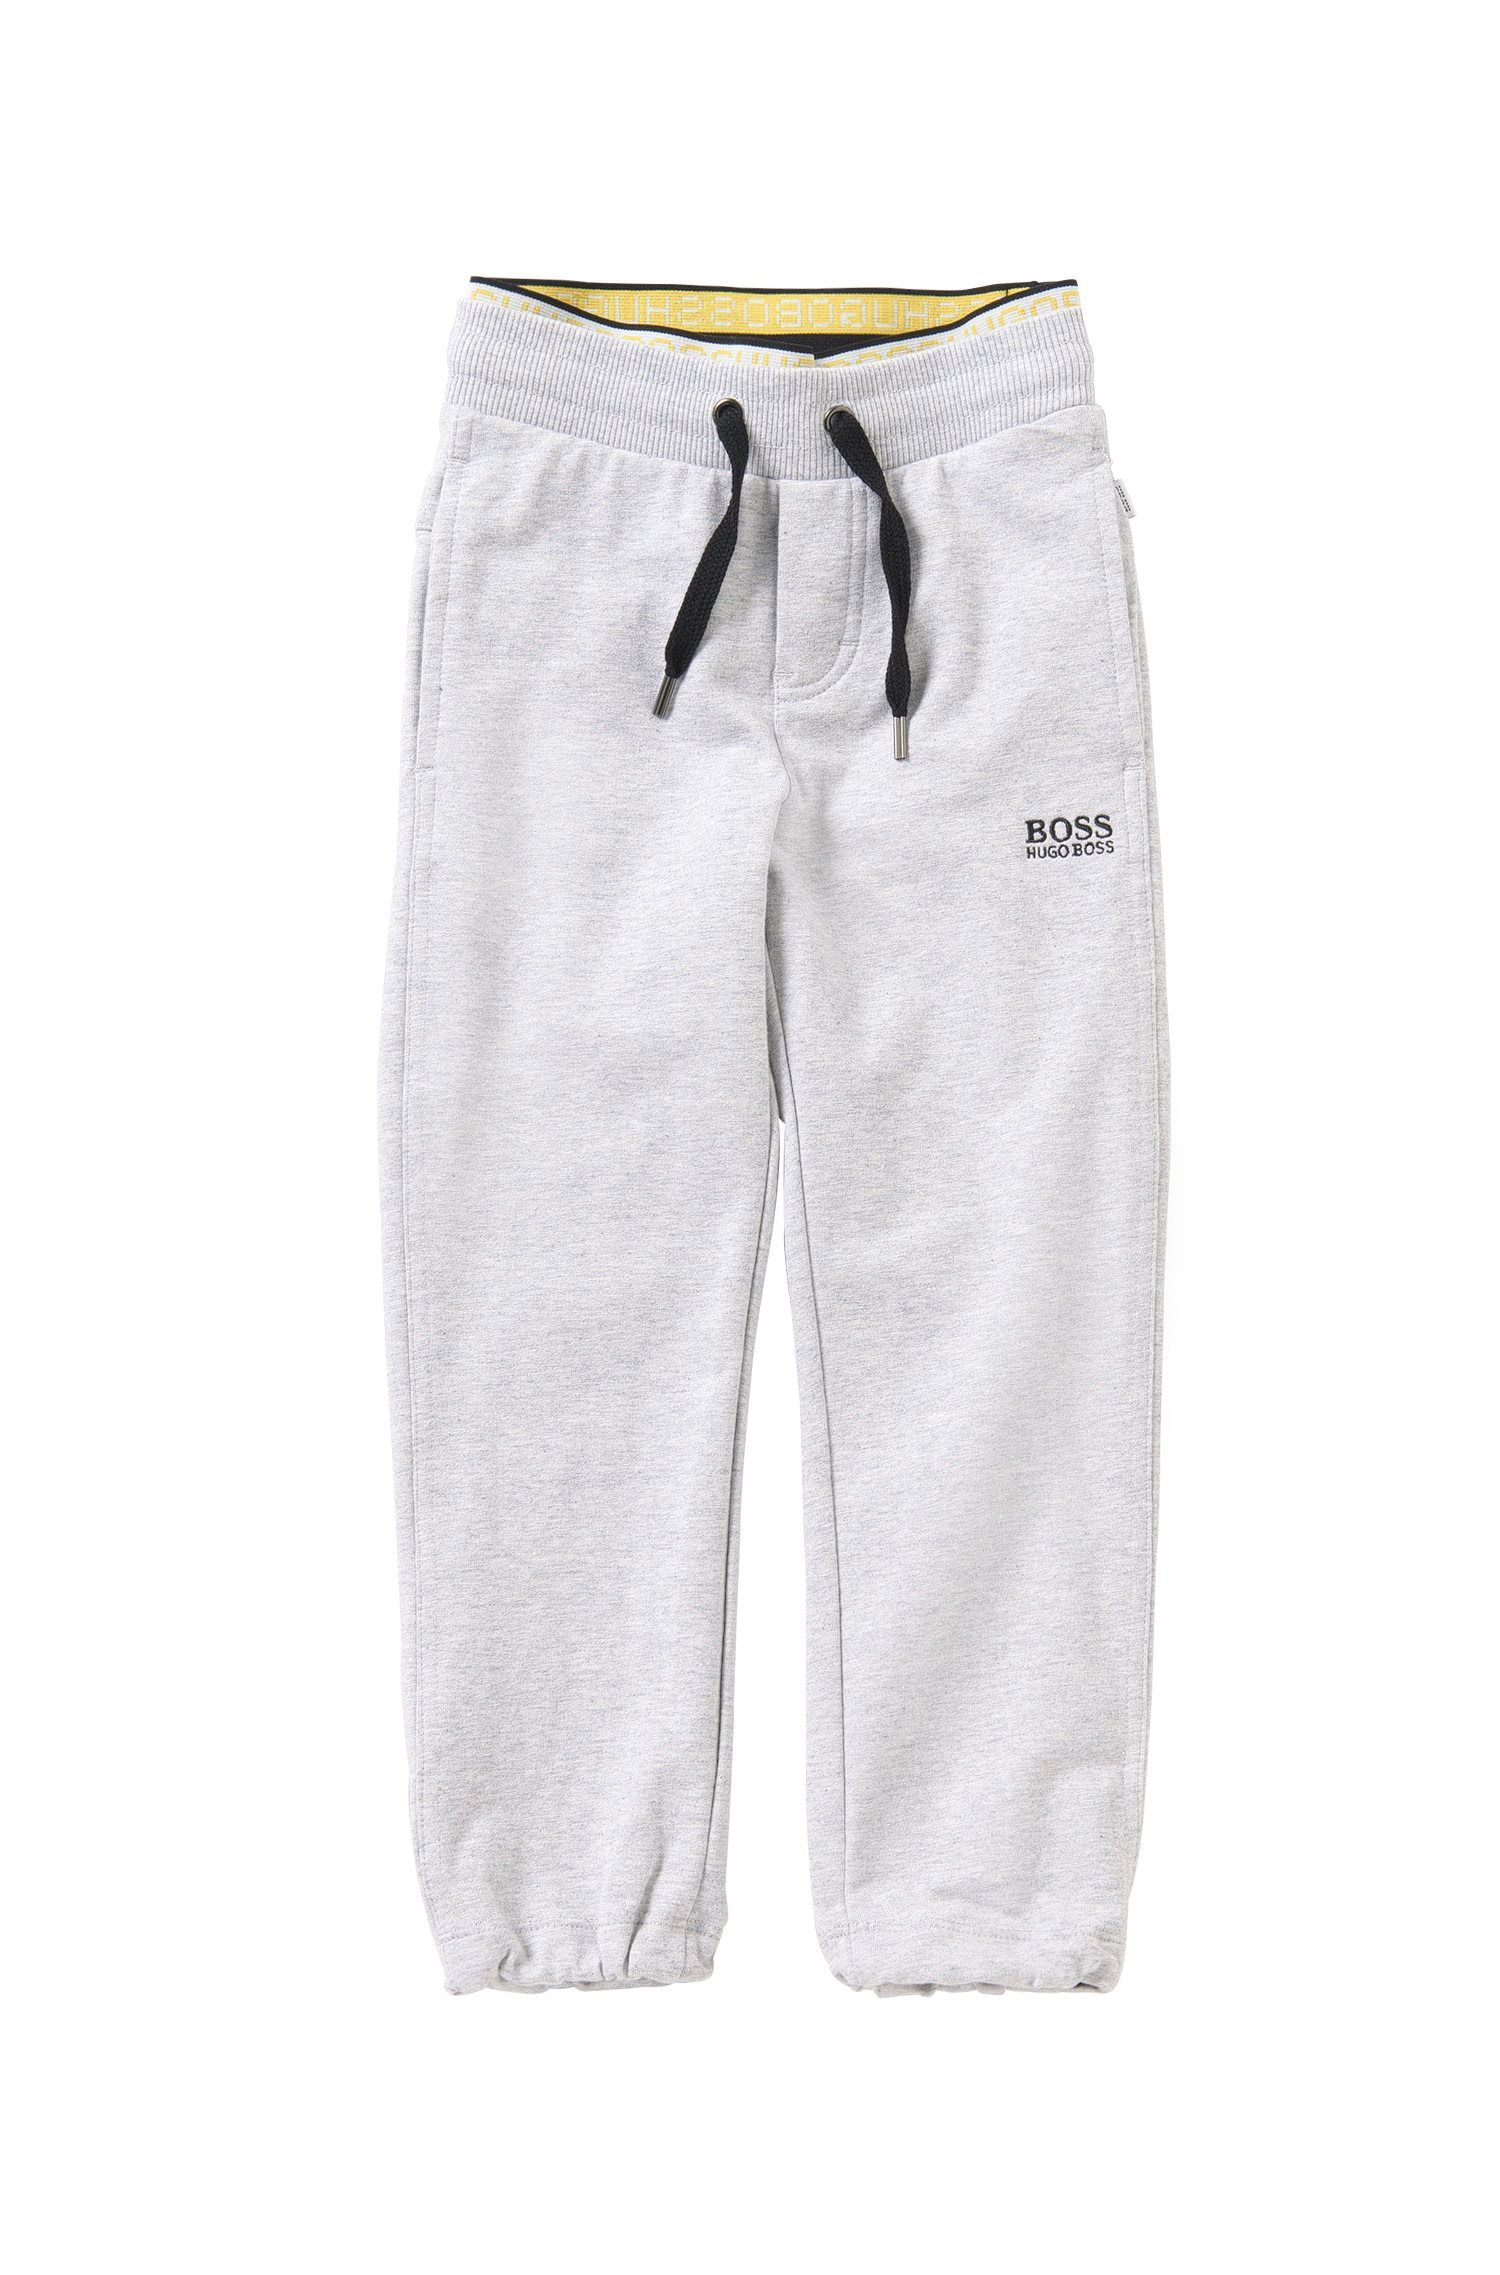 Kids' tracksuit bottoms in stretch cotton with a drawstring waistband: 'J24398'